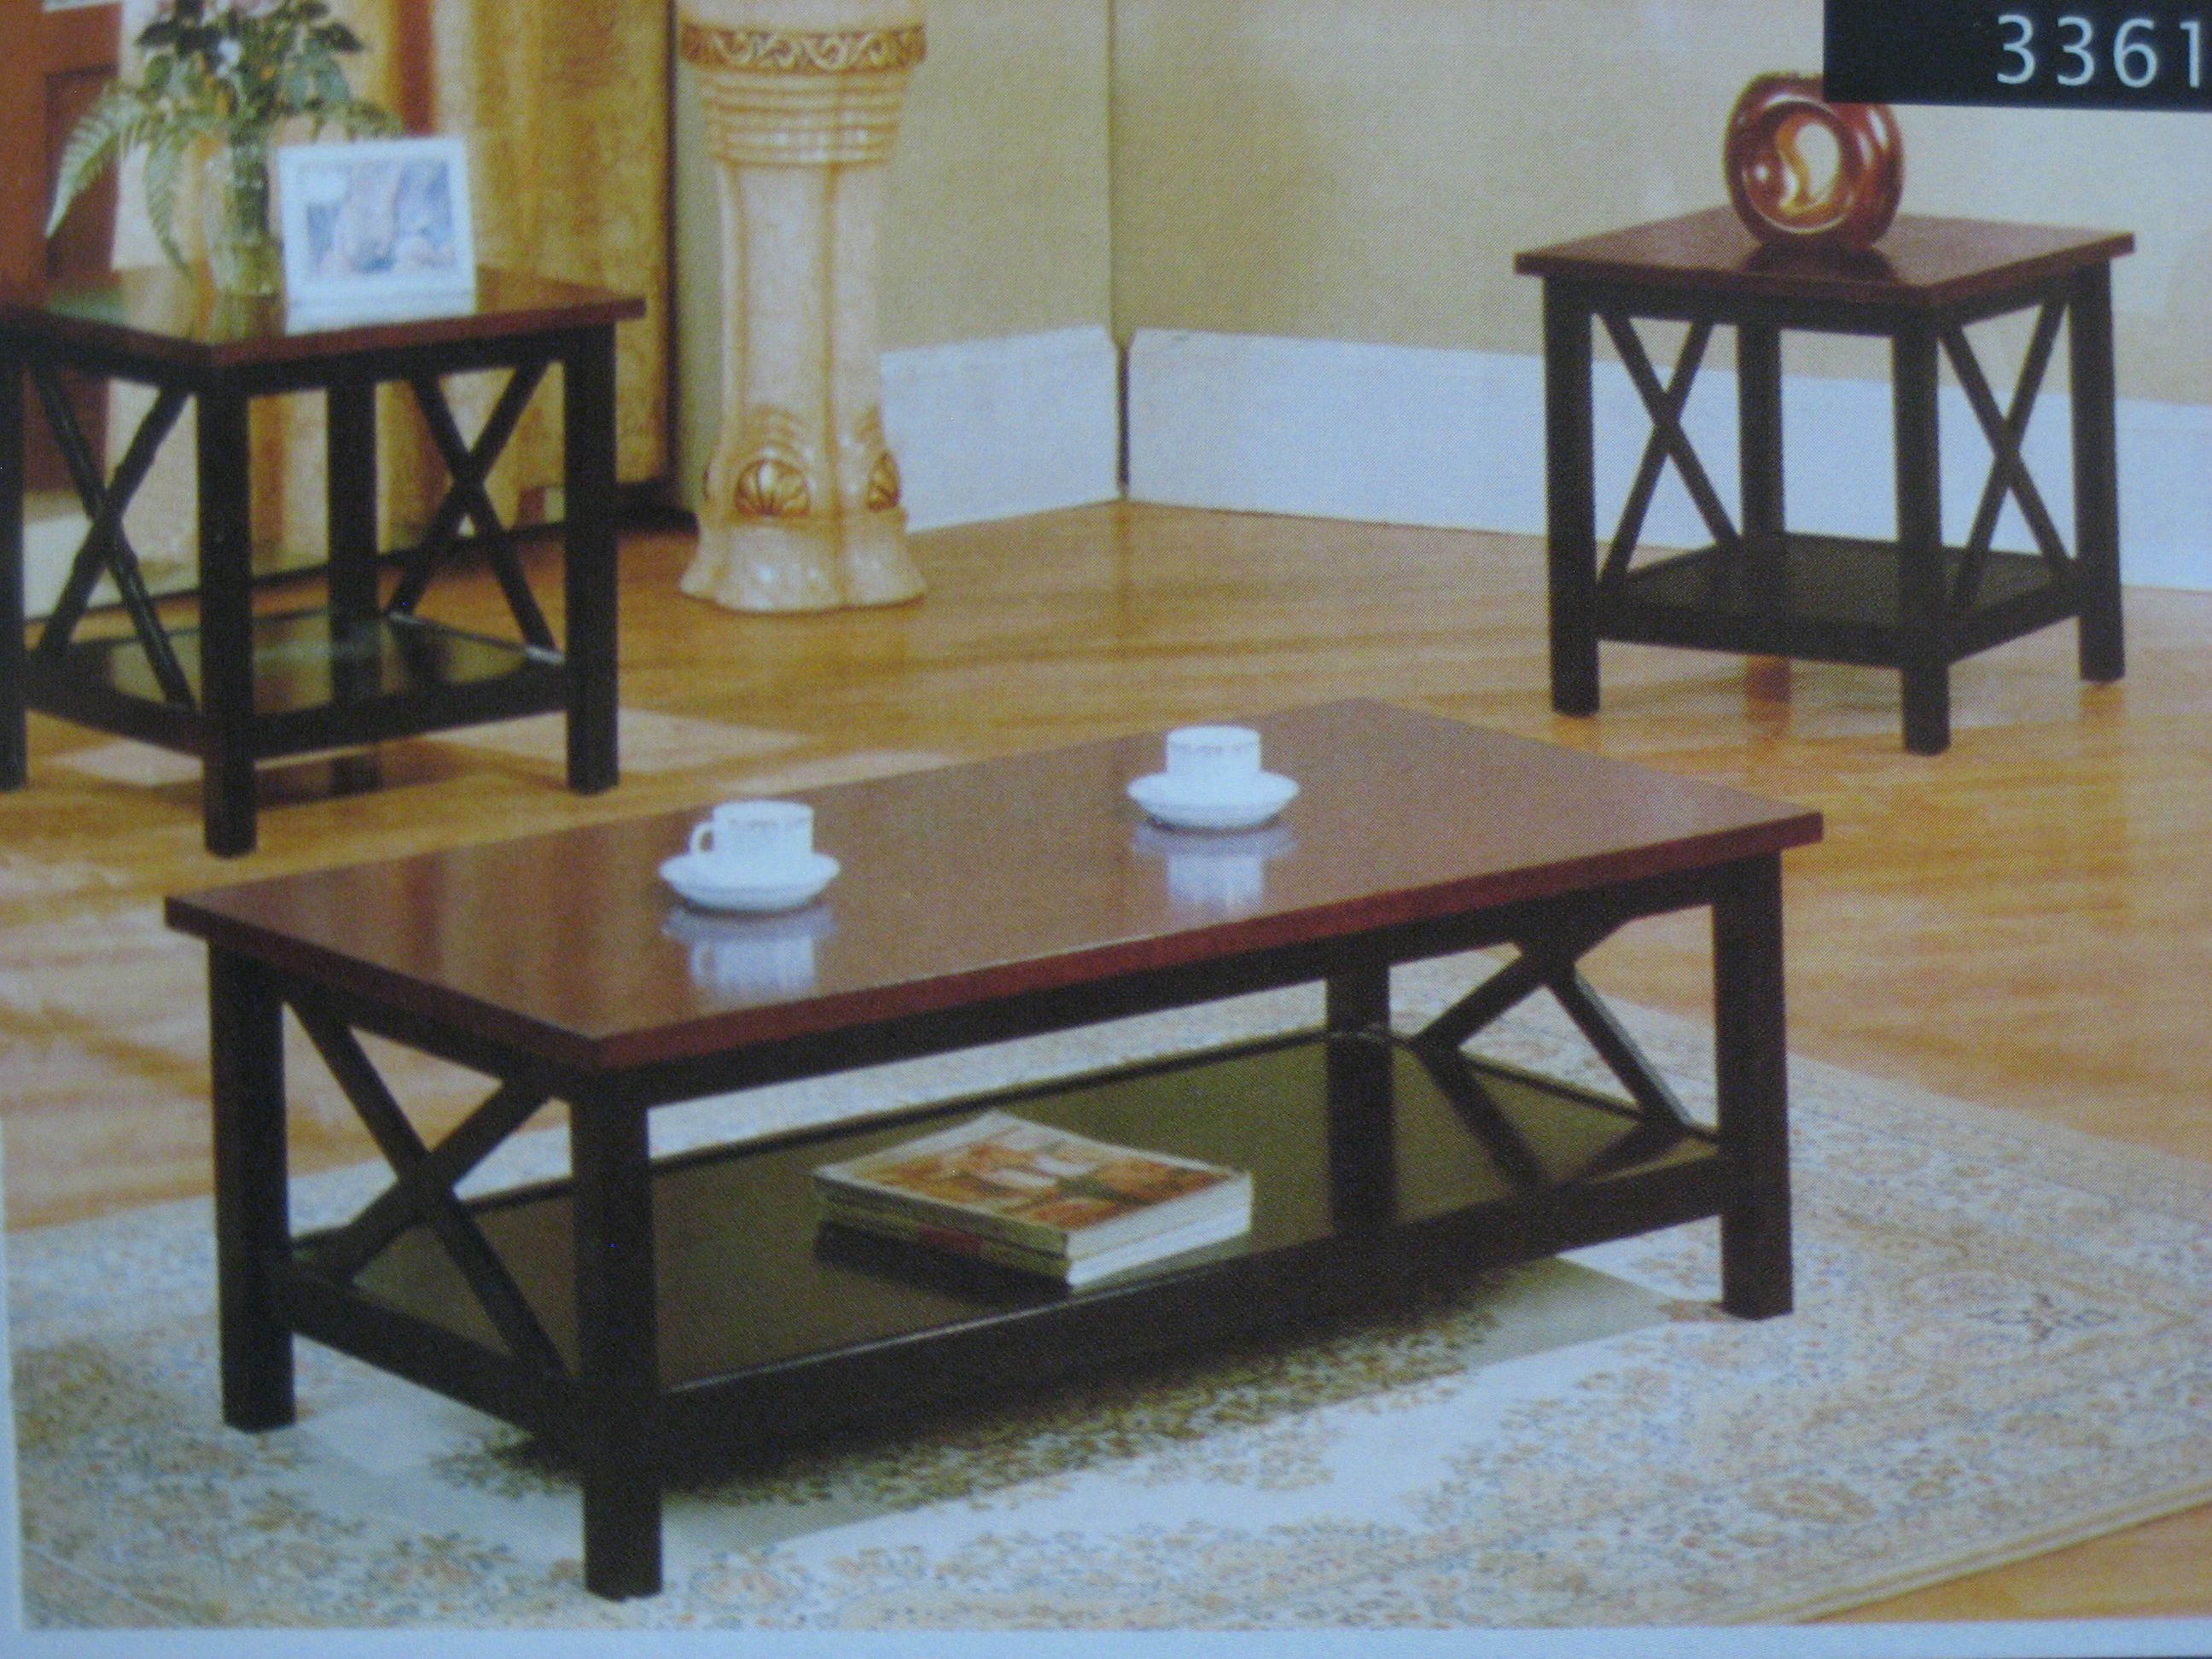 Coffee Table Fabulous Accent Tables Large Coffee Table Small Round Side Table Mirrored Coffee Table Large Square Wohnzimmertische Kaffeetisch Couchtisch Antik